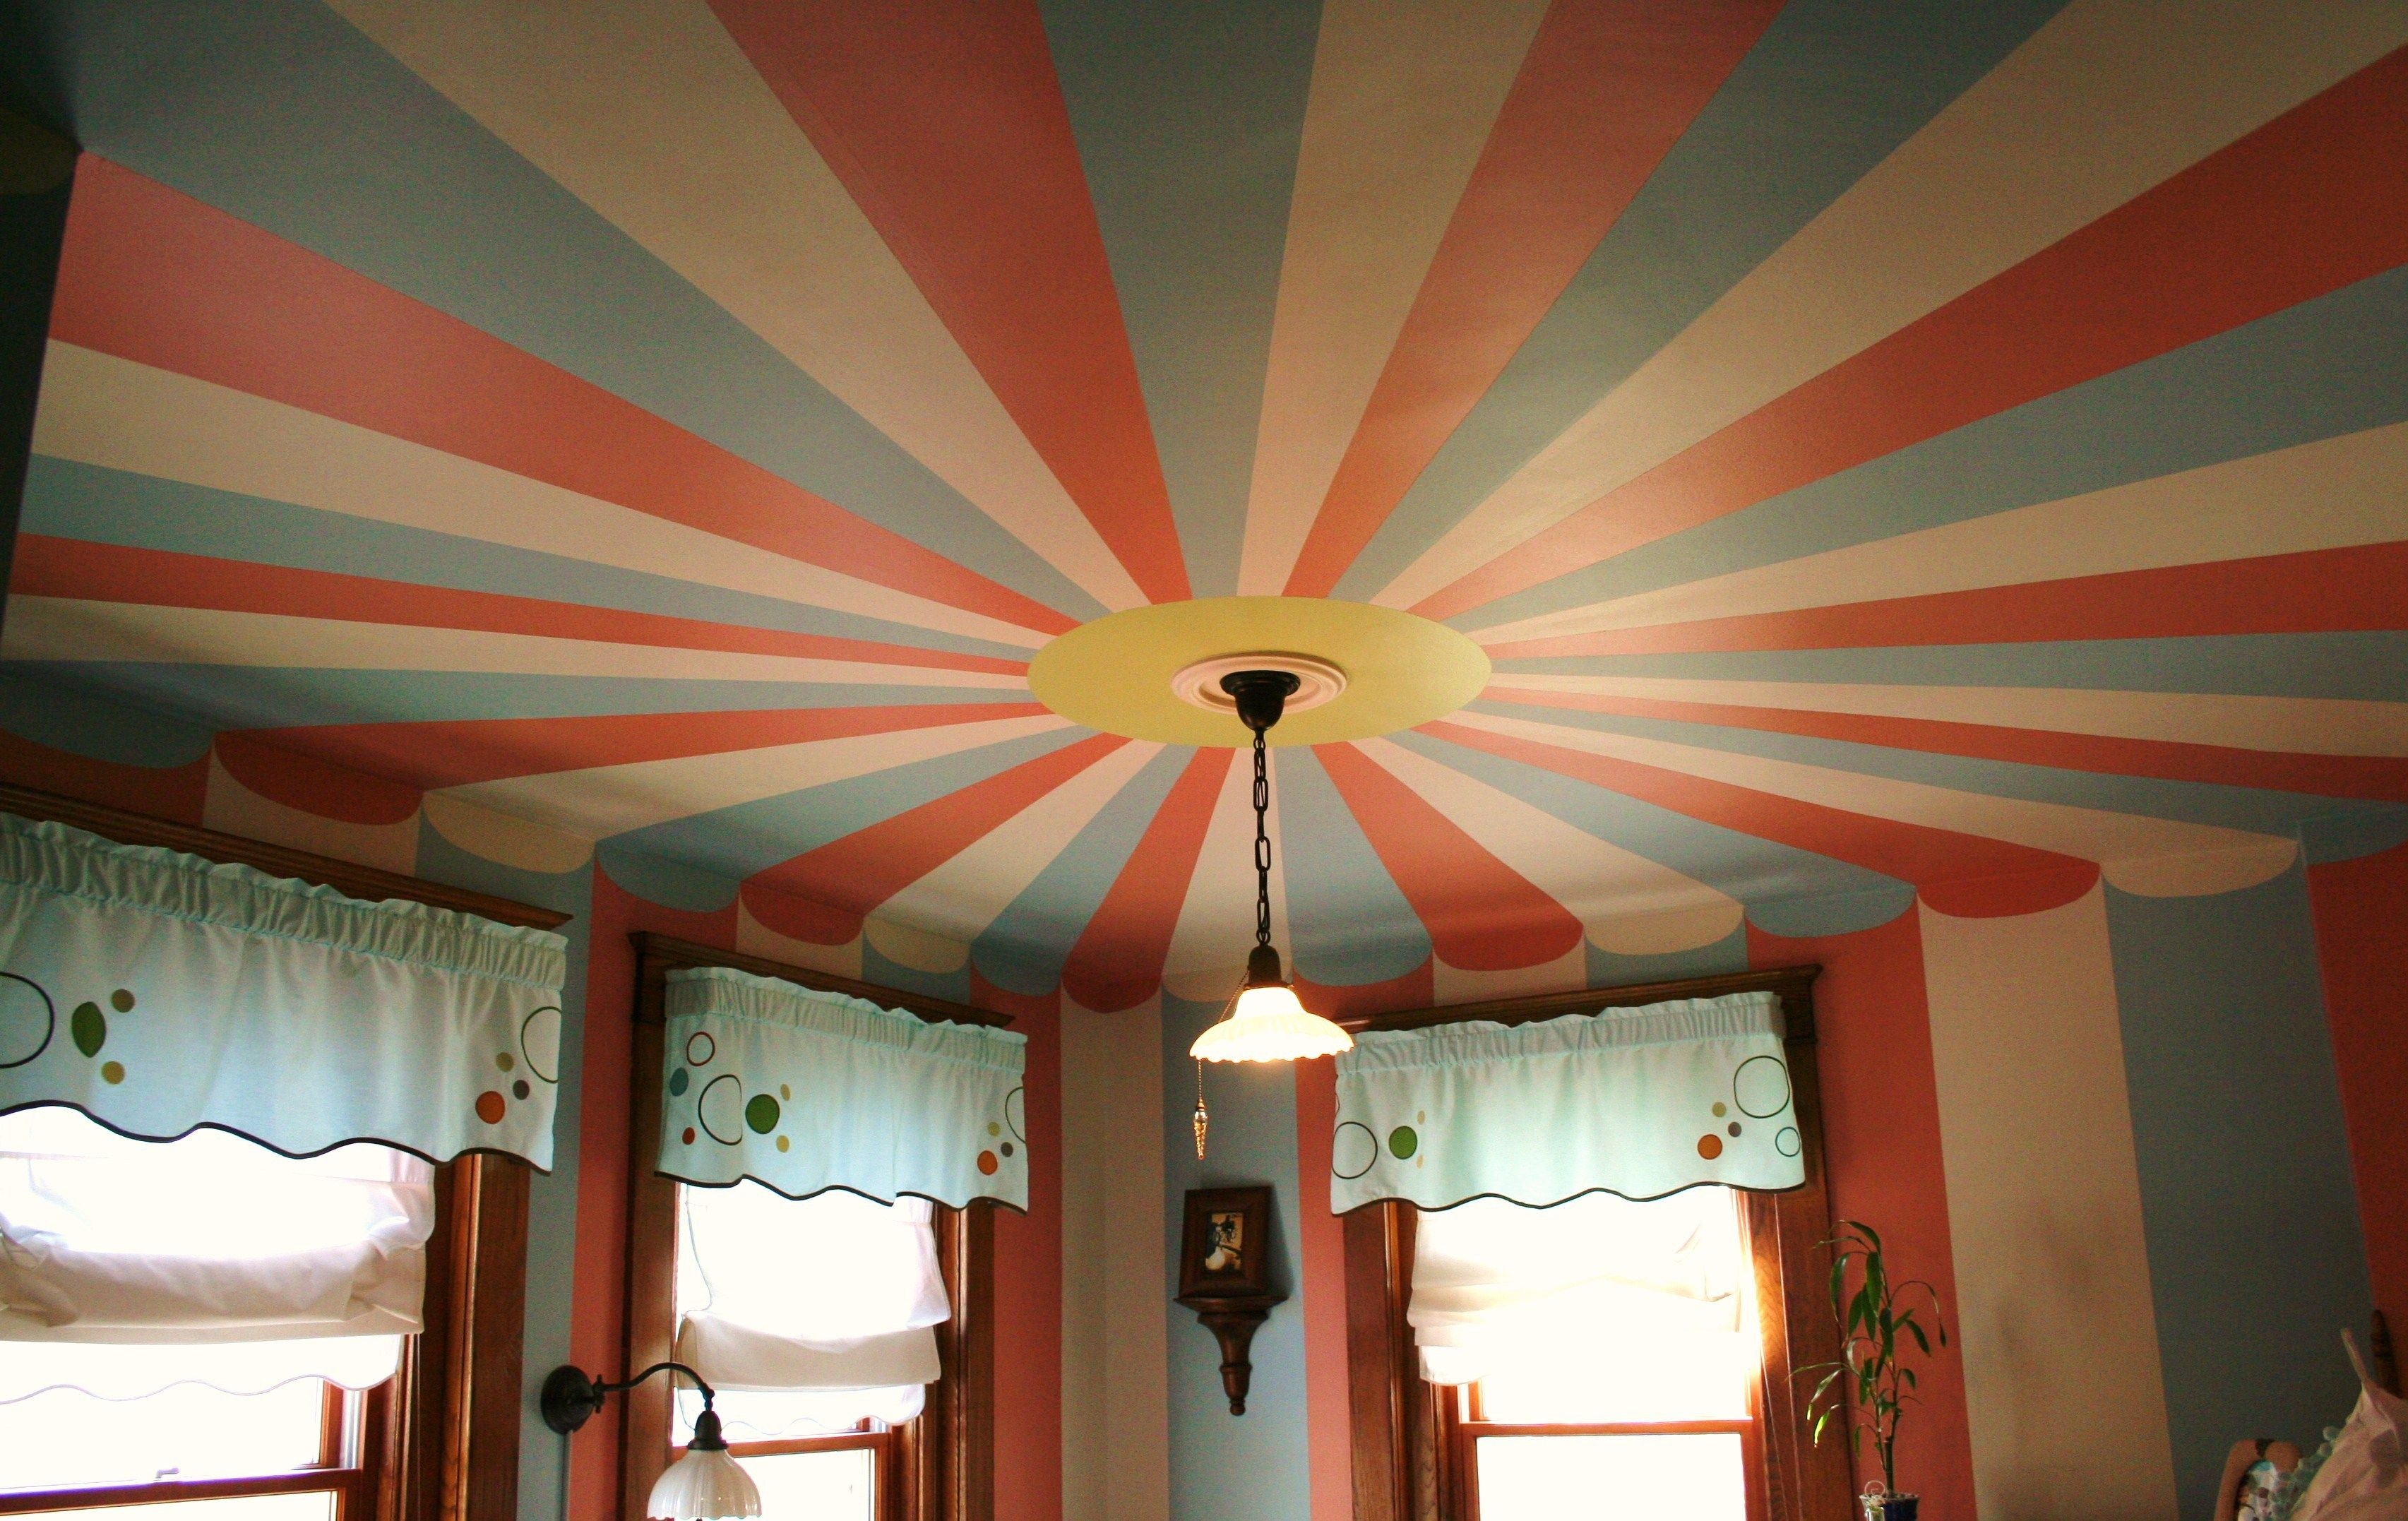 Circus tent painted ceiling | Domain | Pinterest | Paint ceiling ...